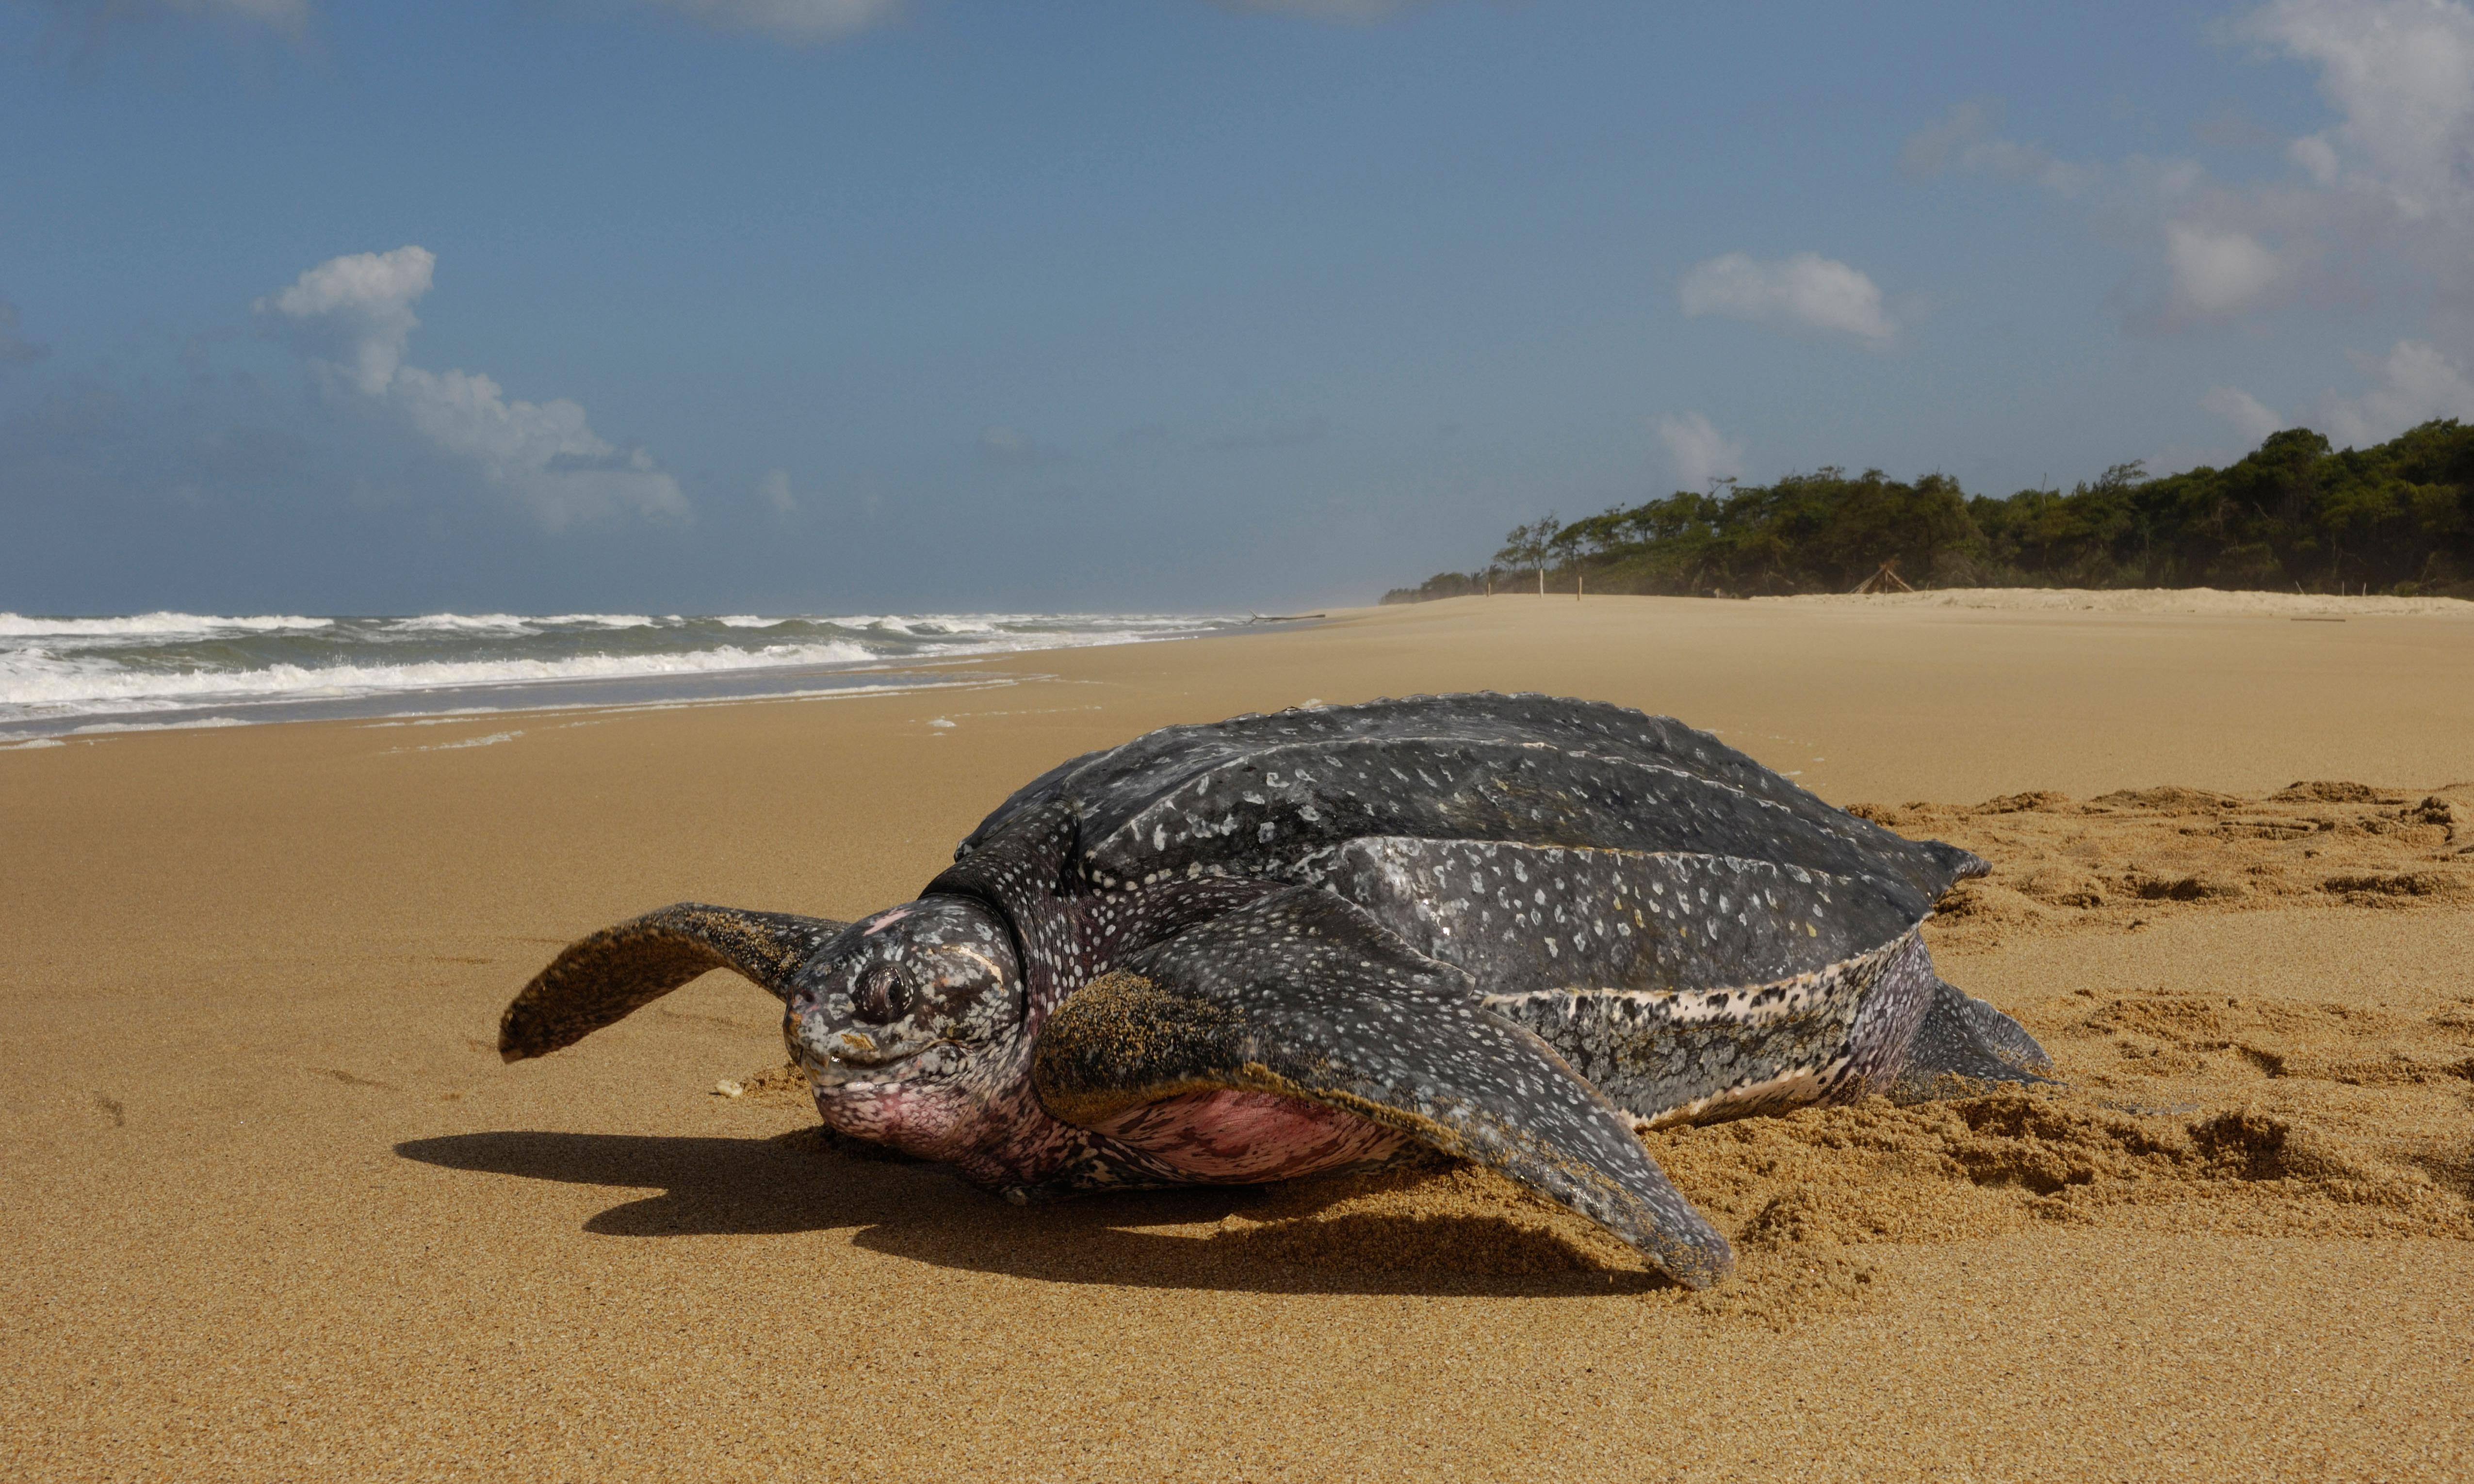 Warming oceans force leatherback turtles on longer journeys to feed